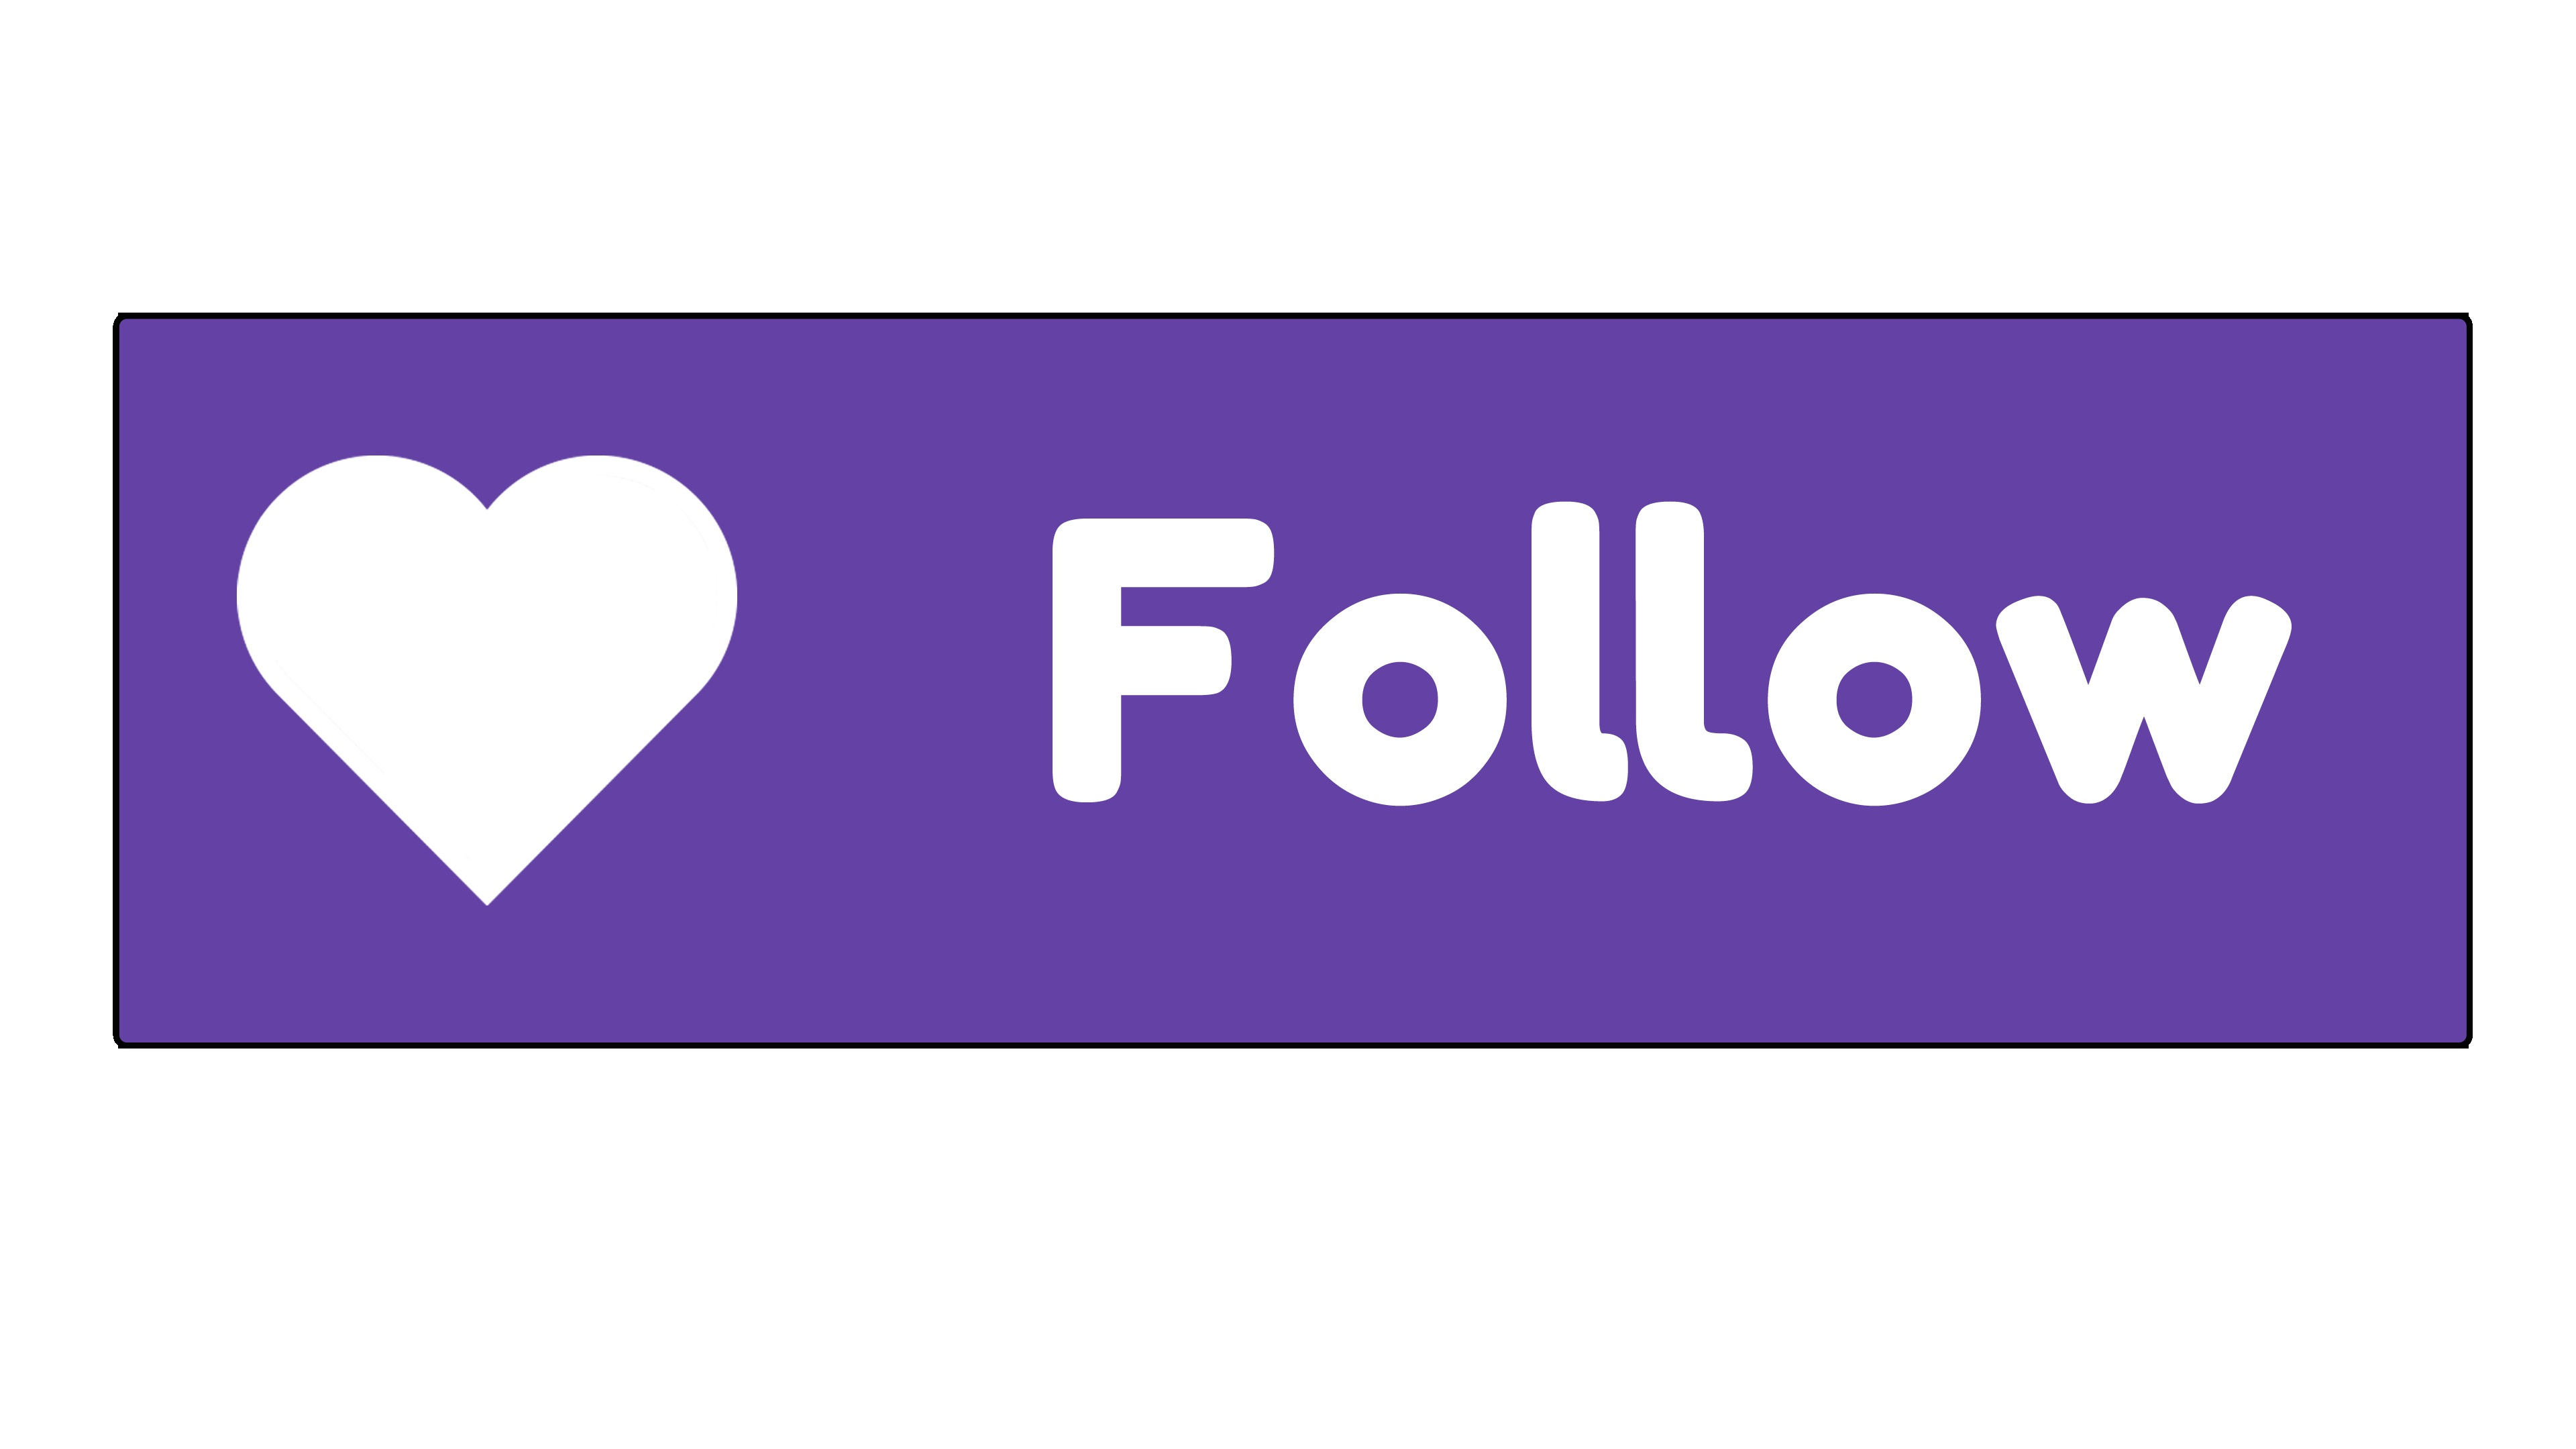 100 Followers with chat bots (login:oauth:token) Twitch 2019